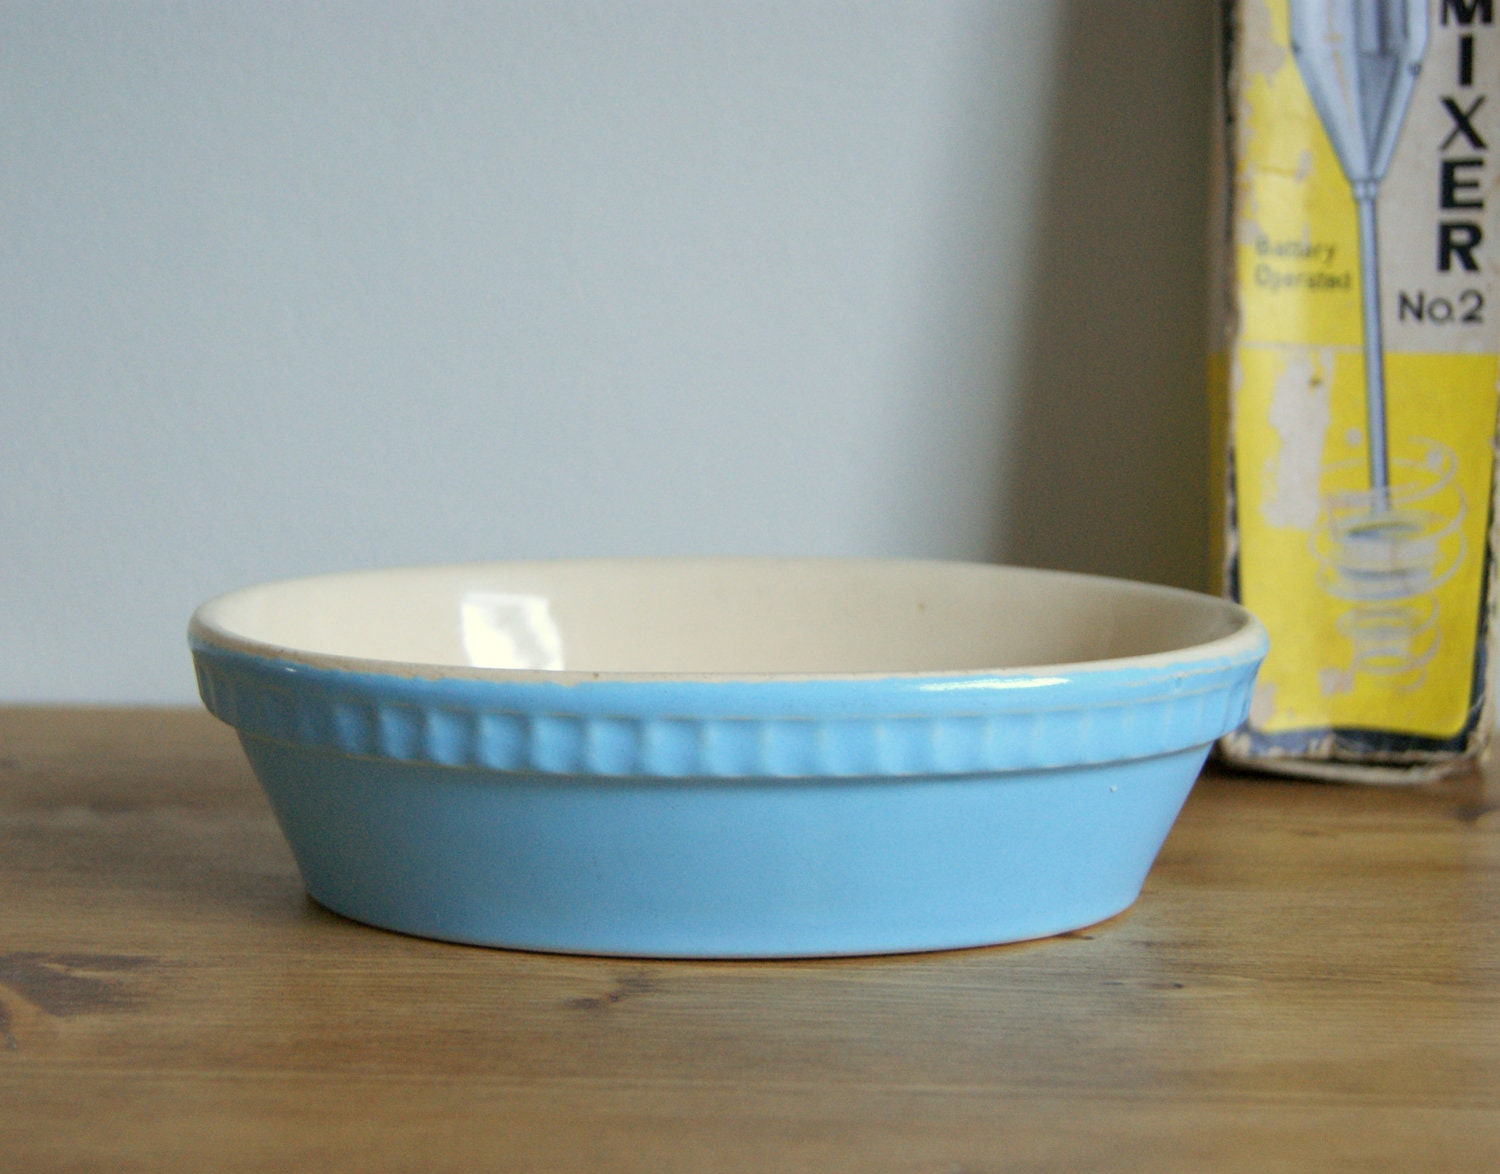 Pie dish, powder blue bowl, vintage kitchen decor. - LittleJayVintage